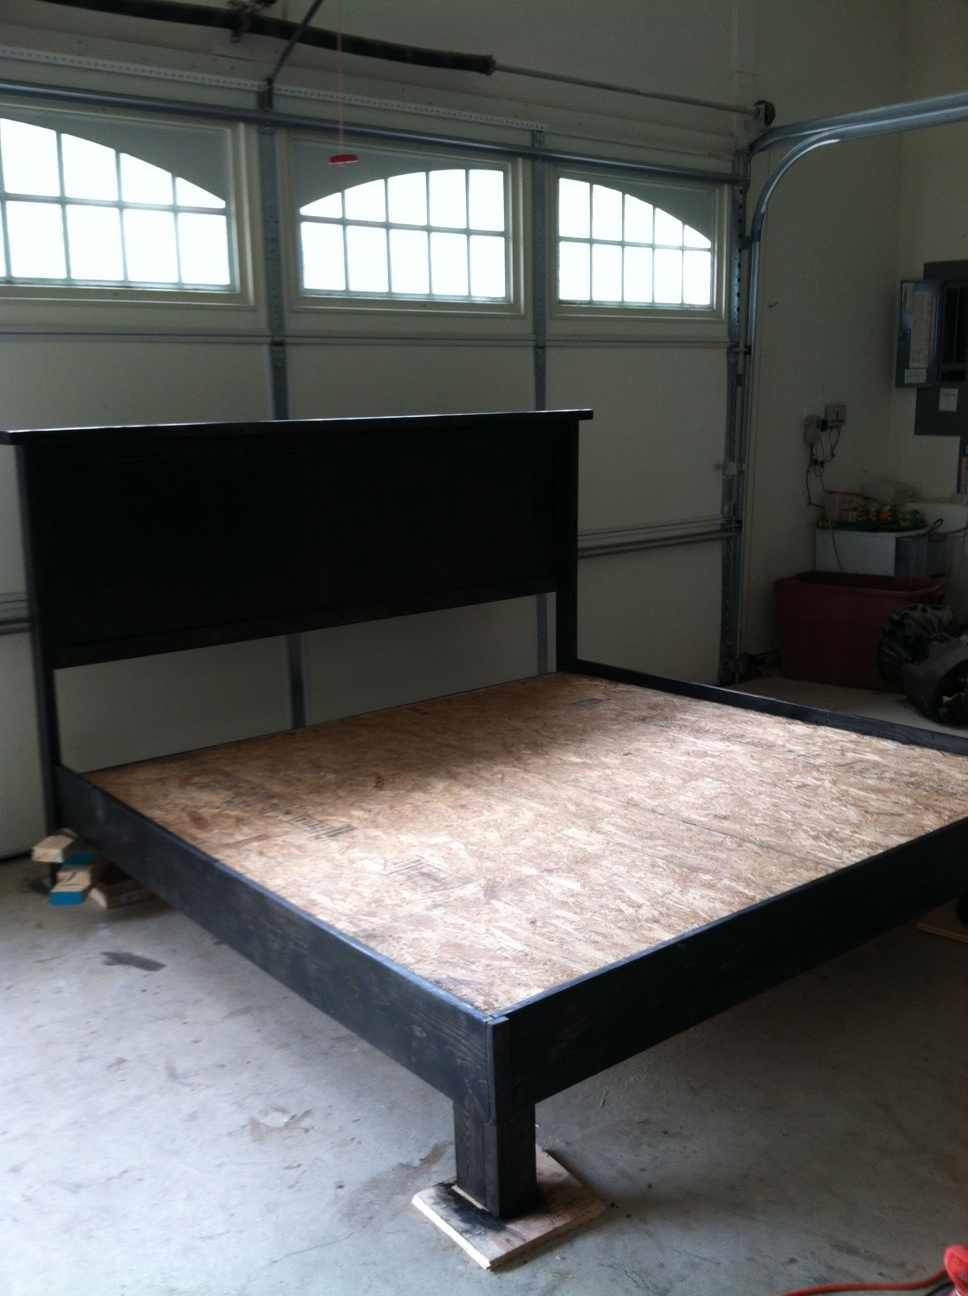 Diy king bed frame - All Stained Up And Ready To Go